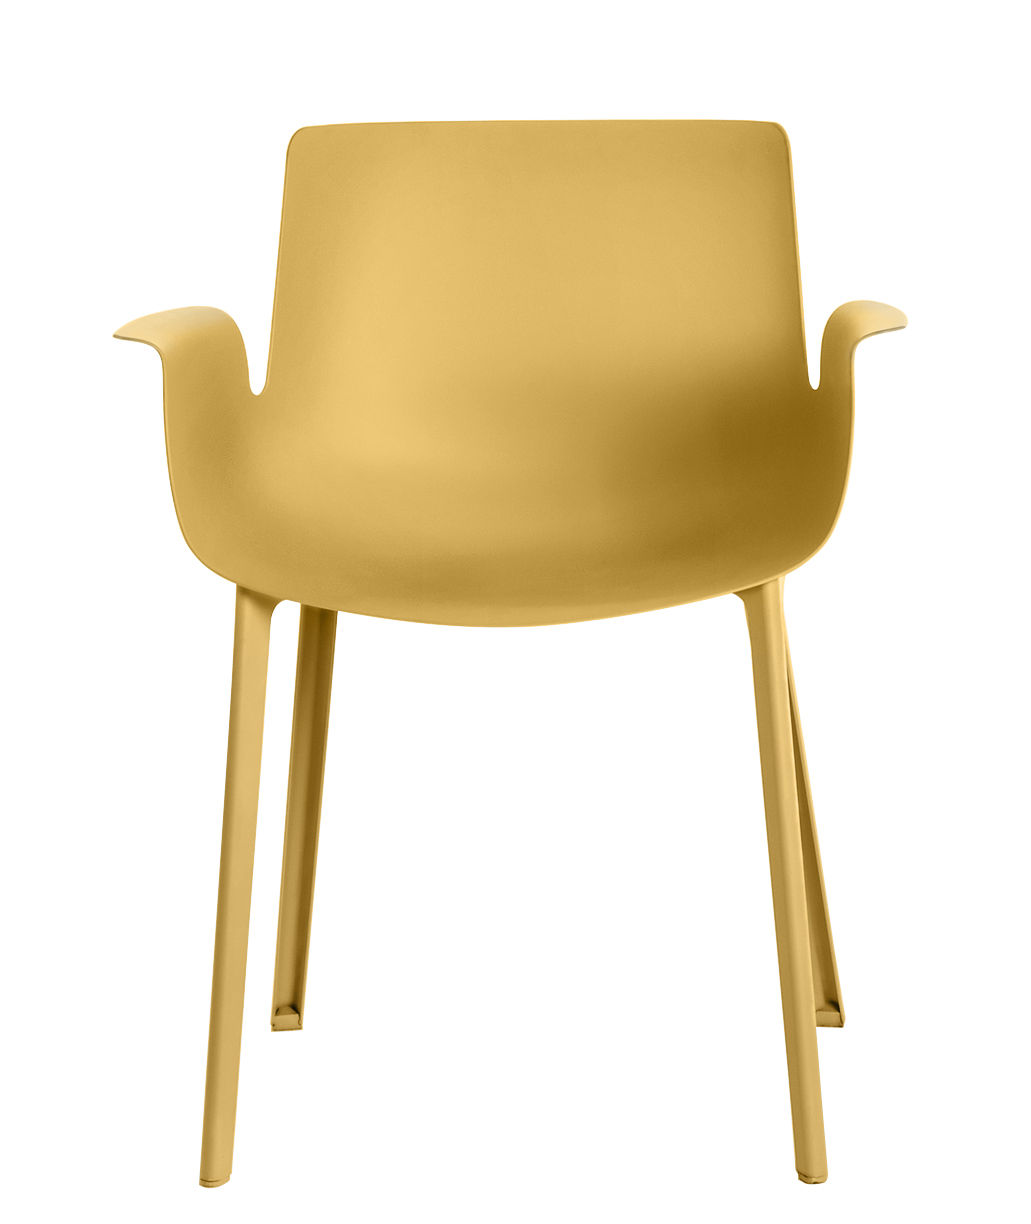 fauteuil piuma plastique jaune moutarde kartell. Black Bedroom Furniture Sets. Home Design Ideas